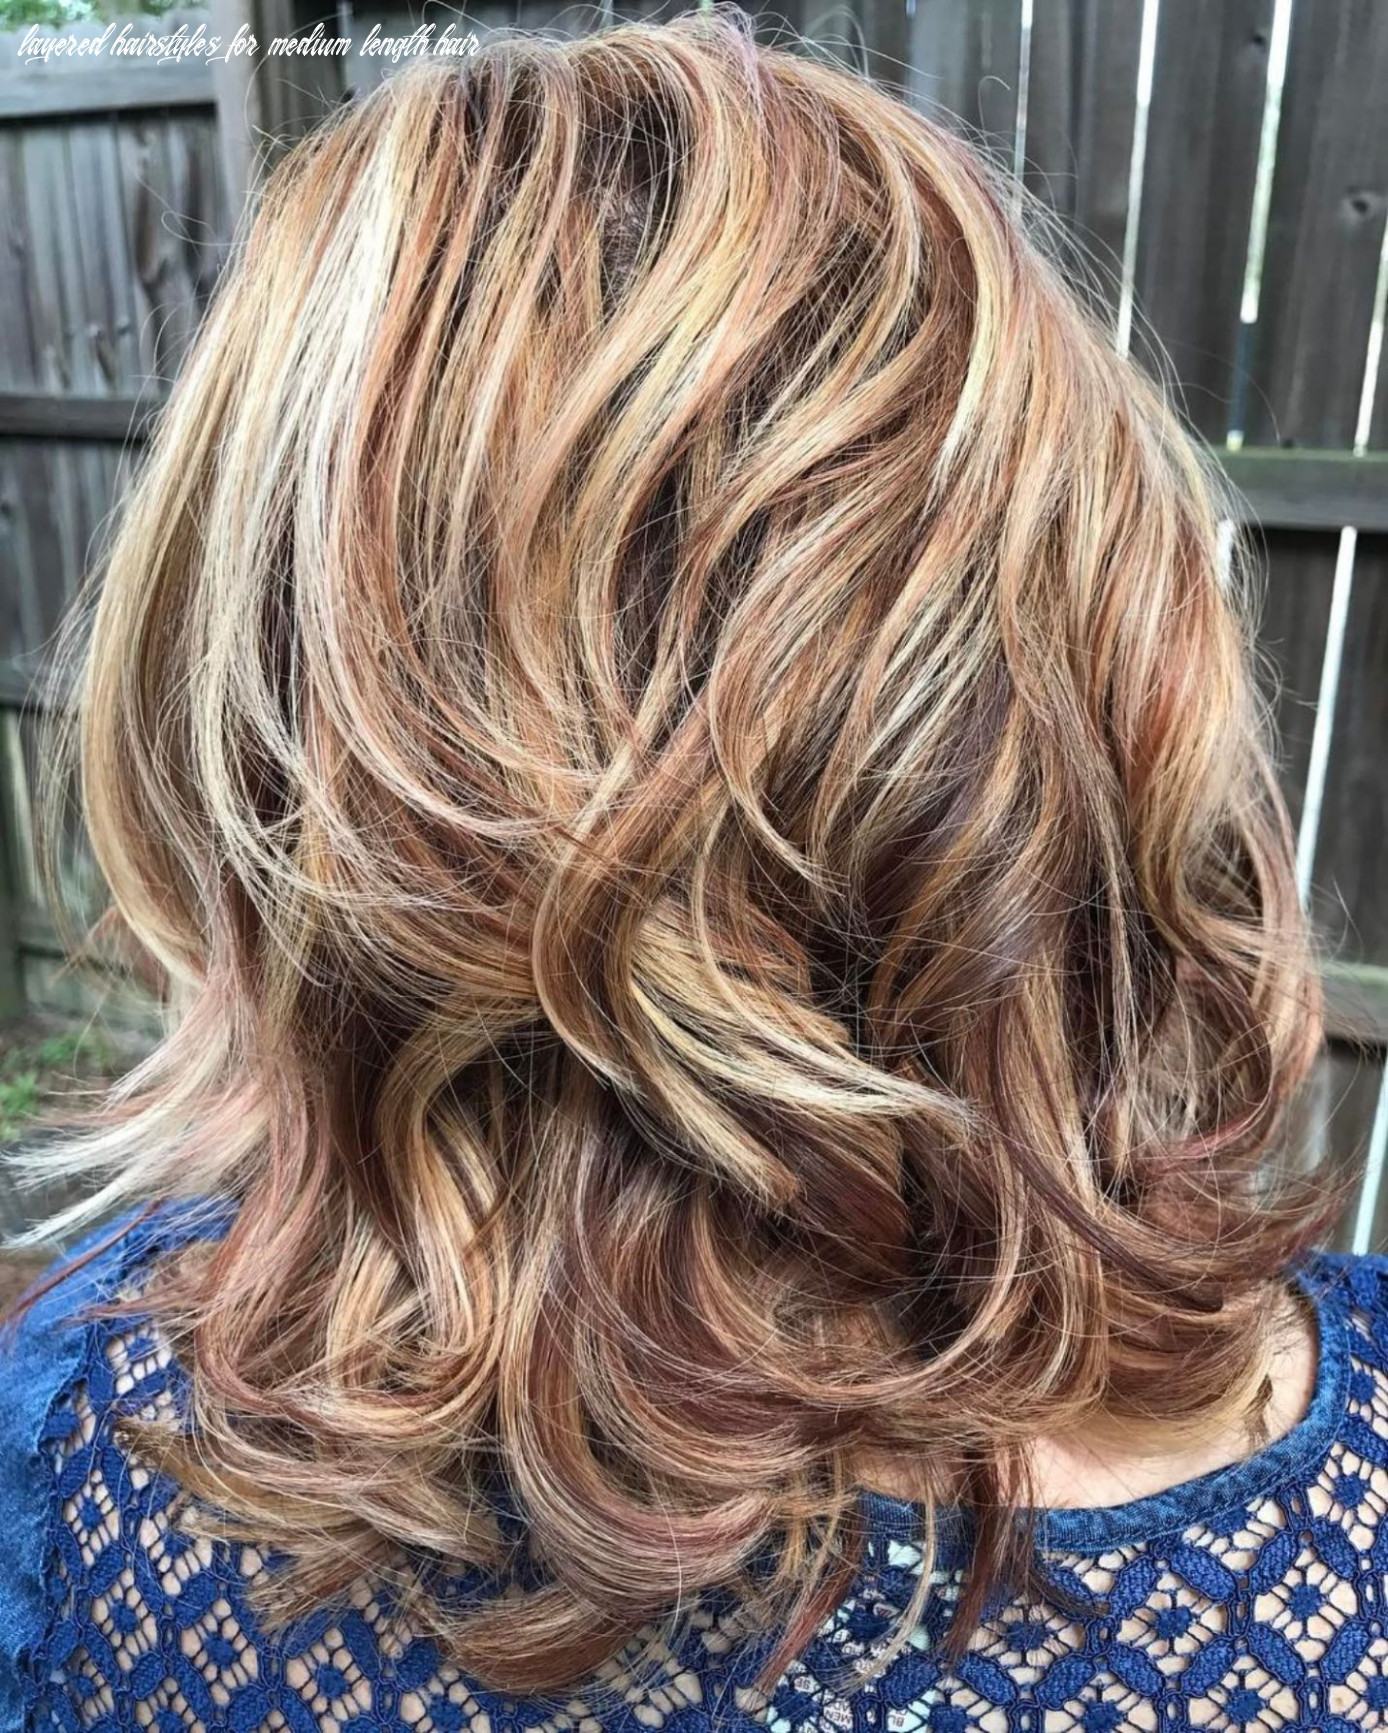 11 most magnetizing hairstyles for thick wavy hair | medium hair